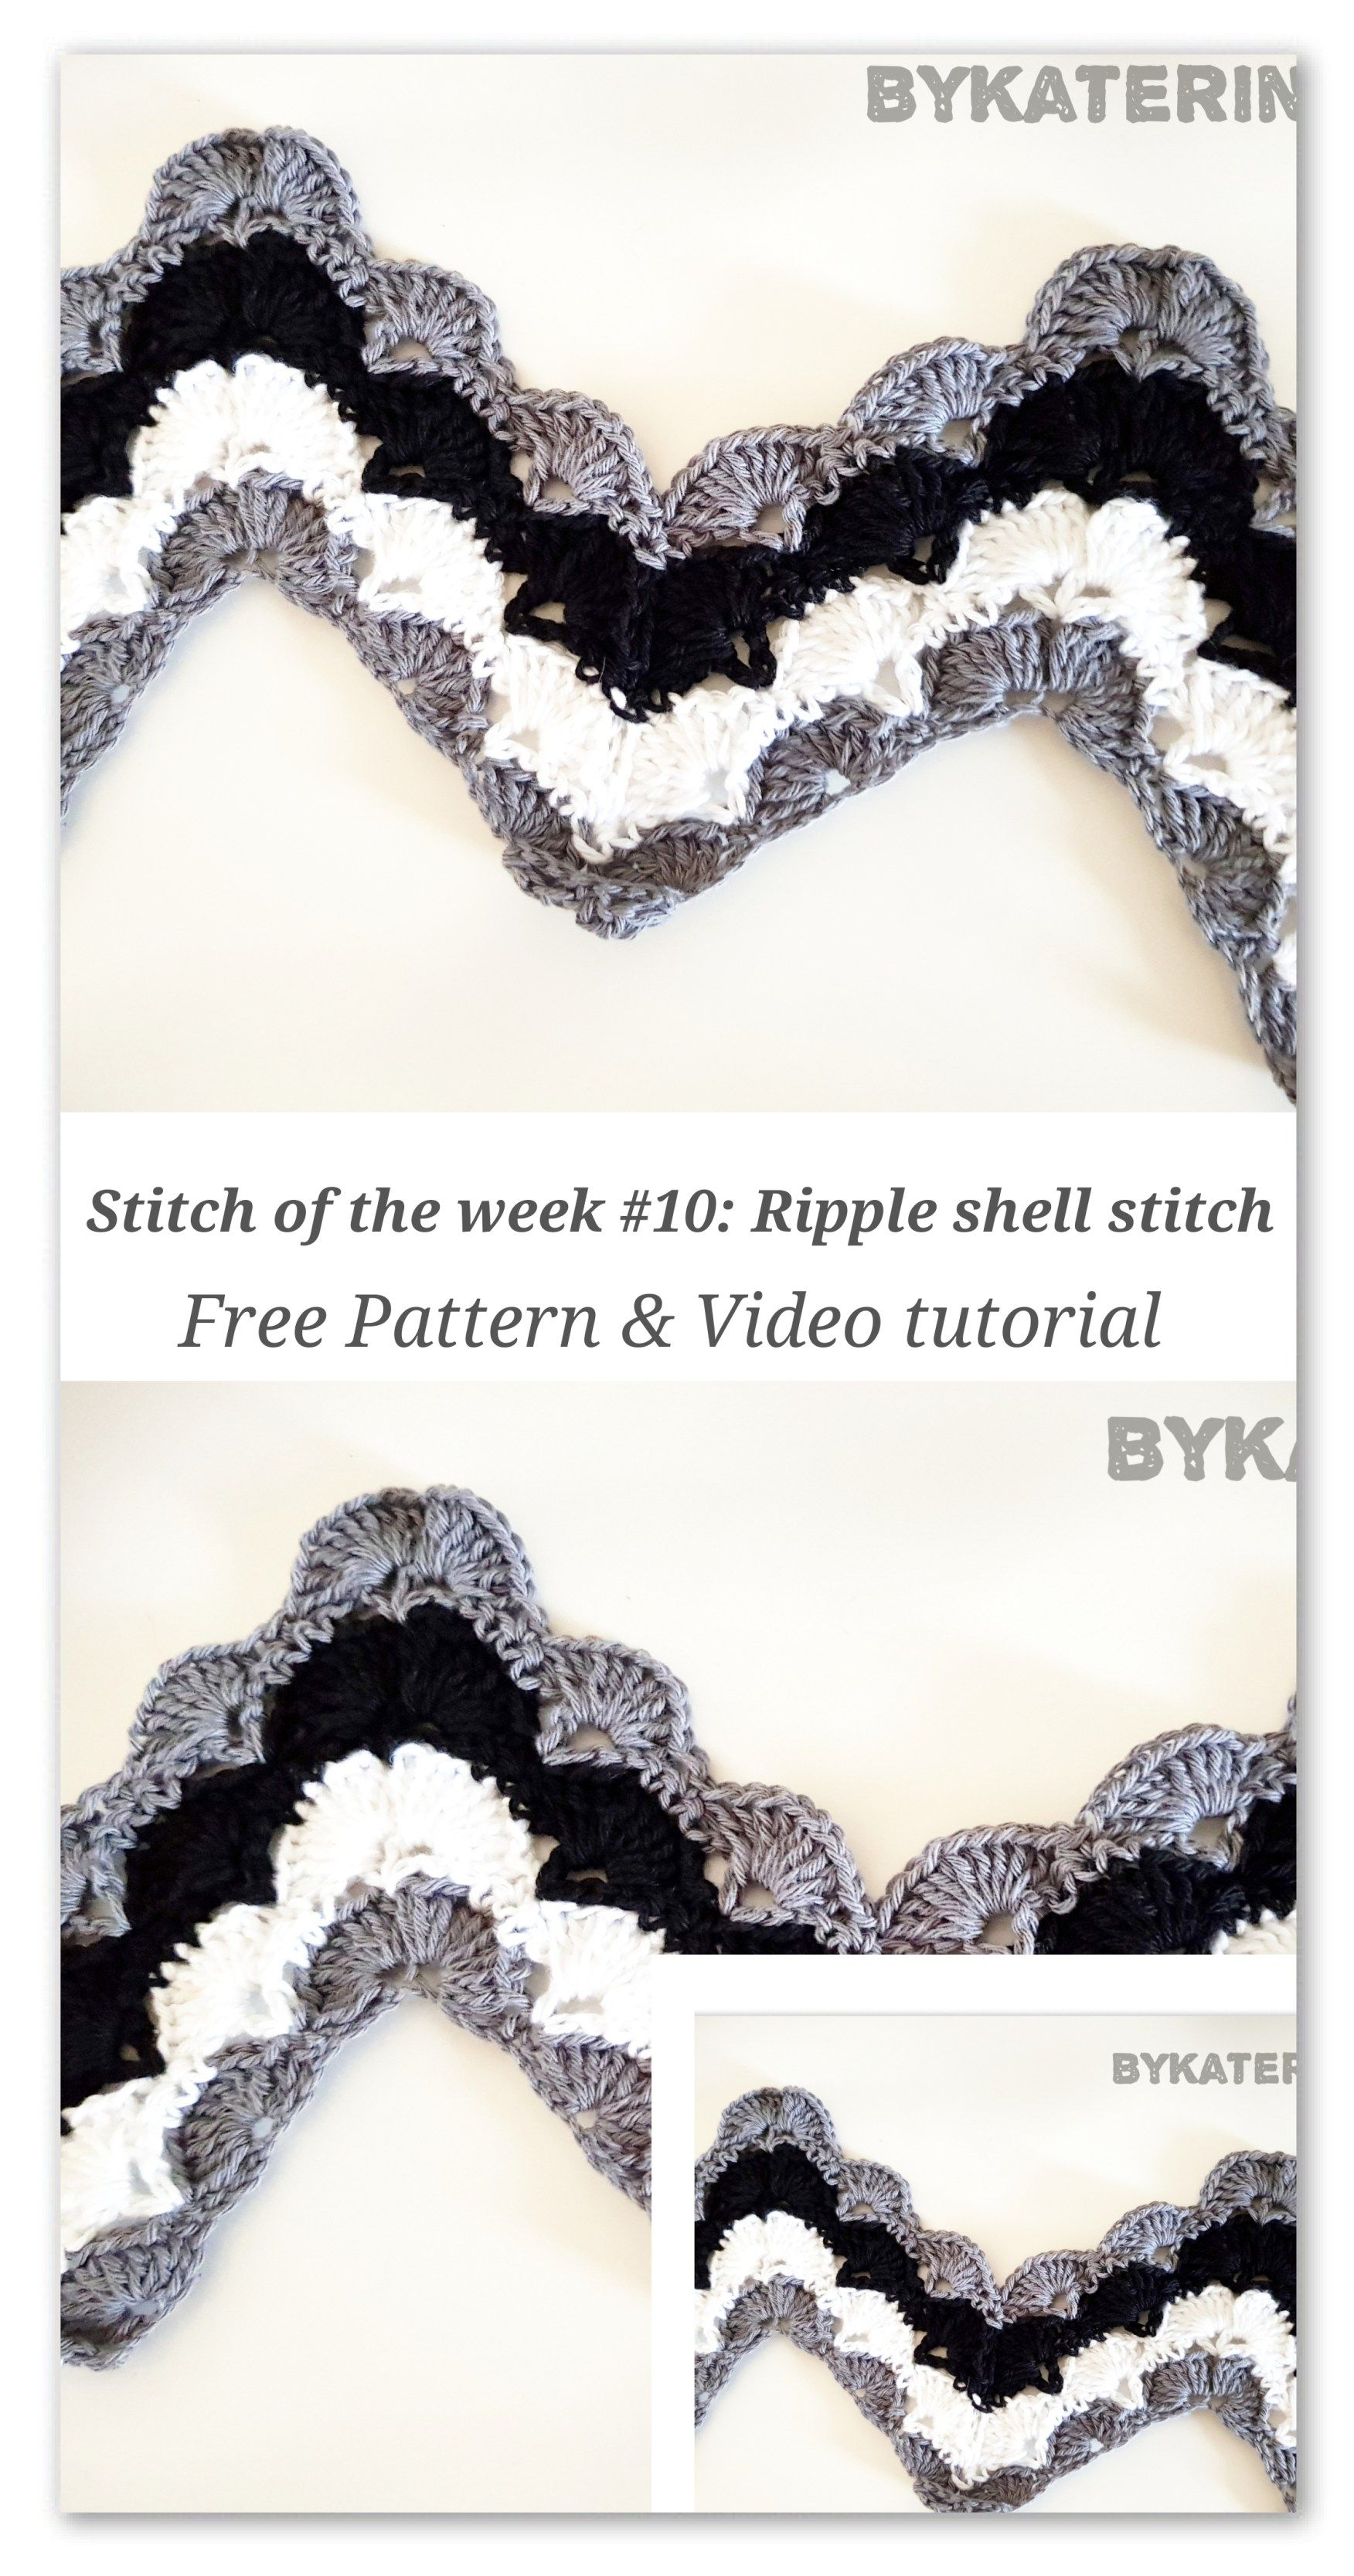 Stitch of the week #10: Ripple shell stitch | Crafty | Pinterest ...